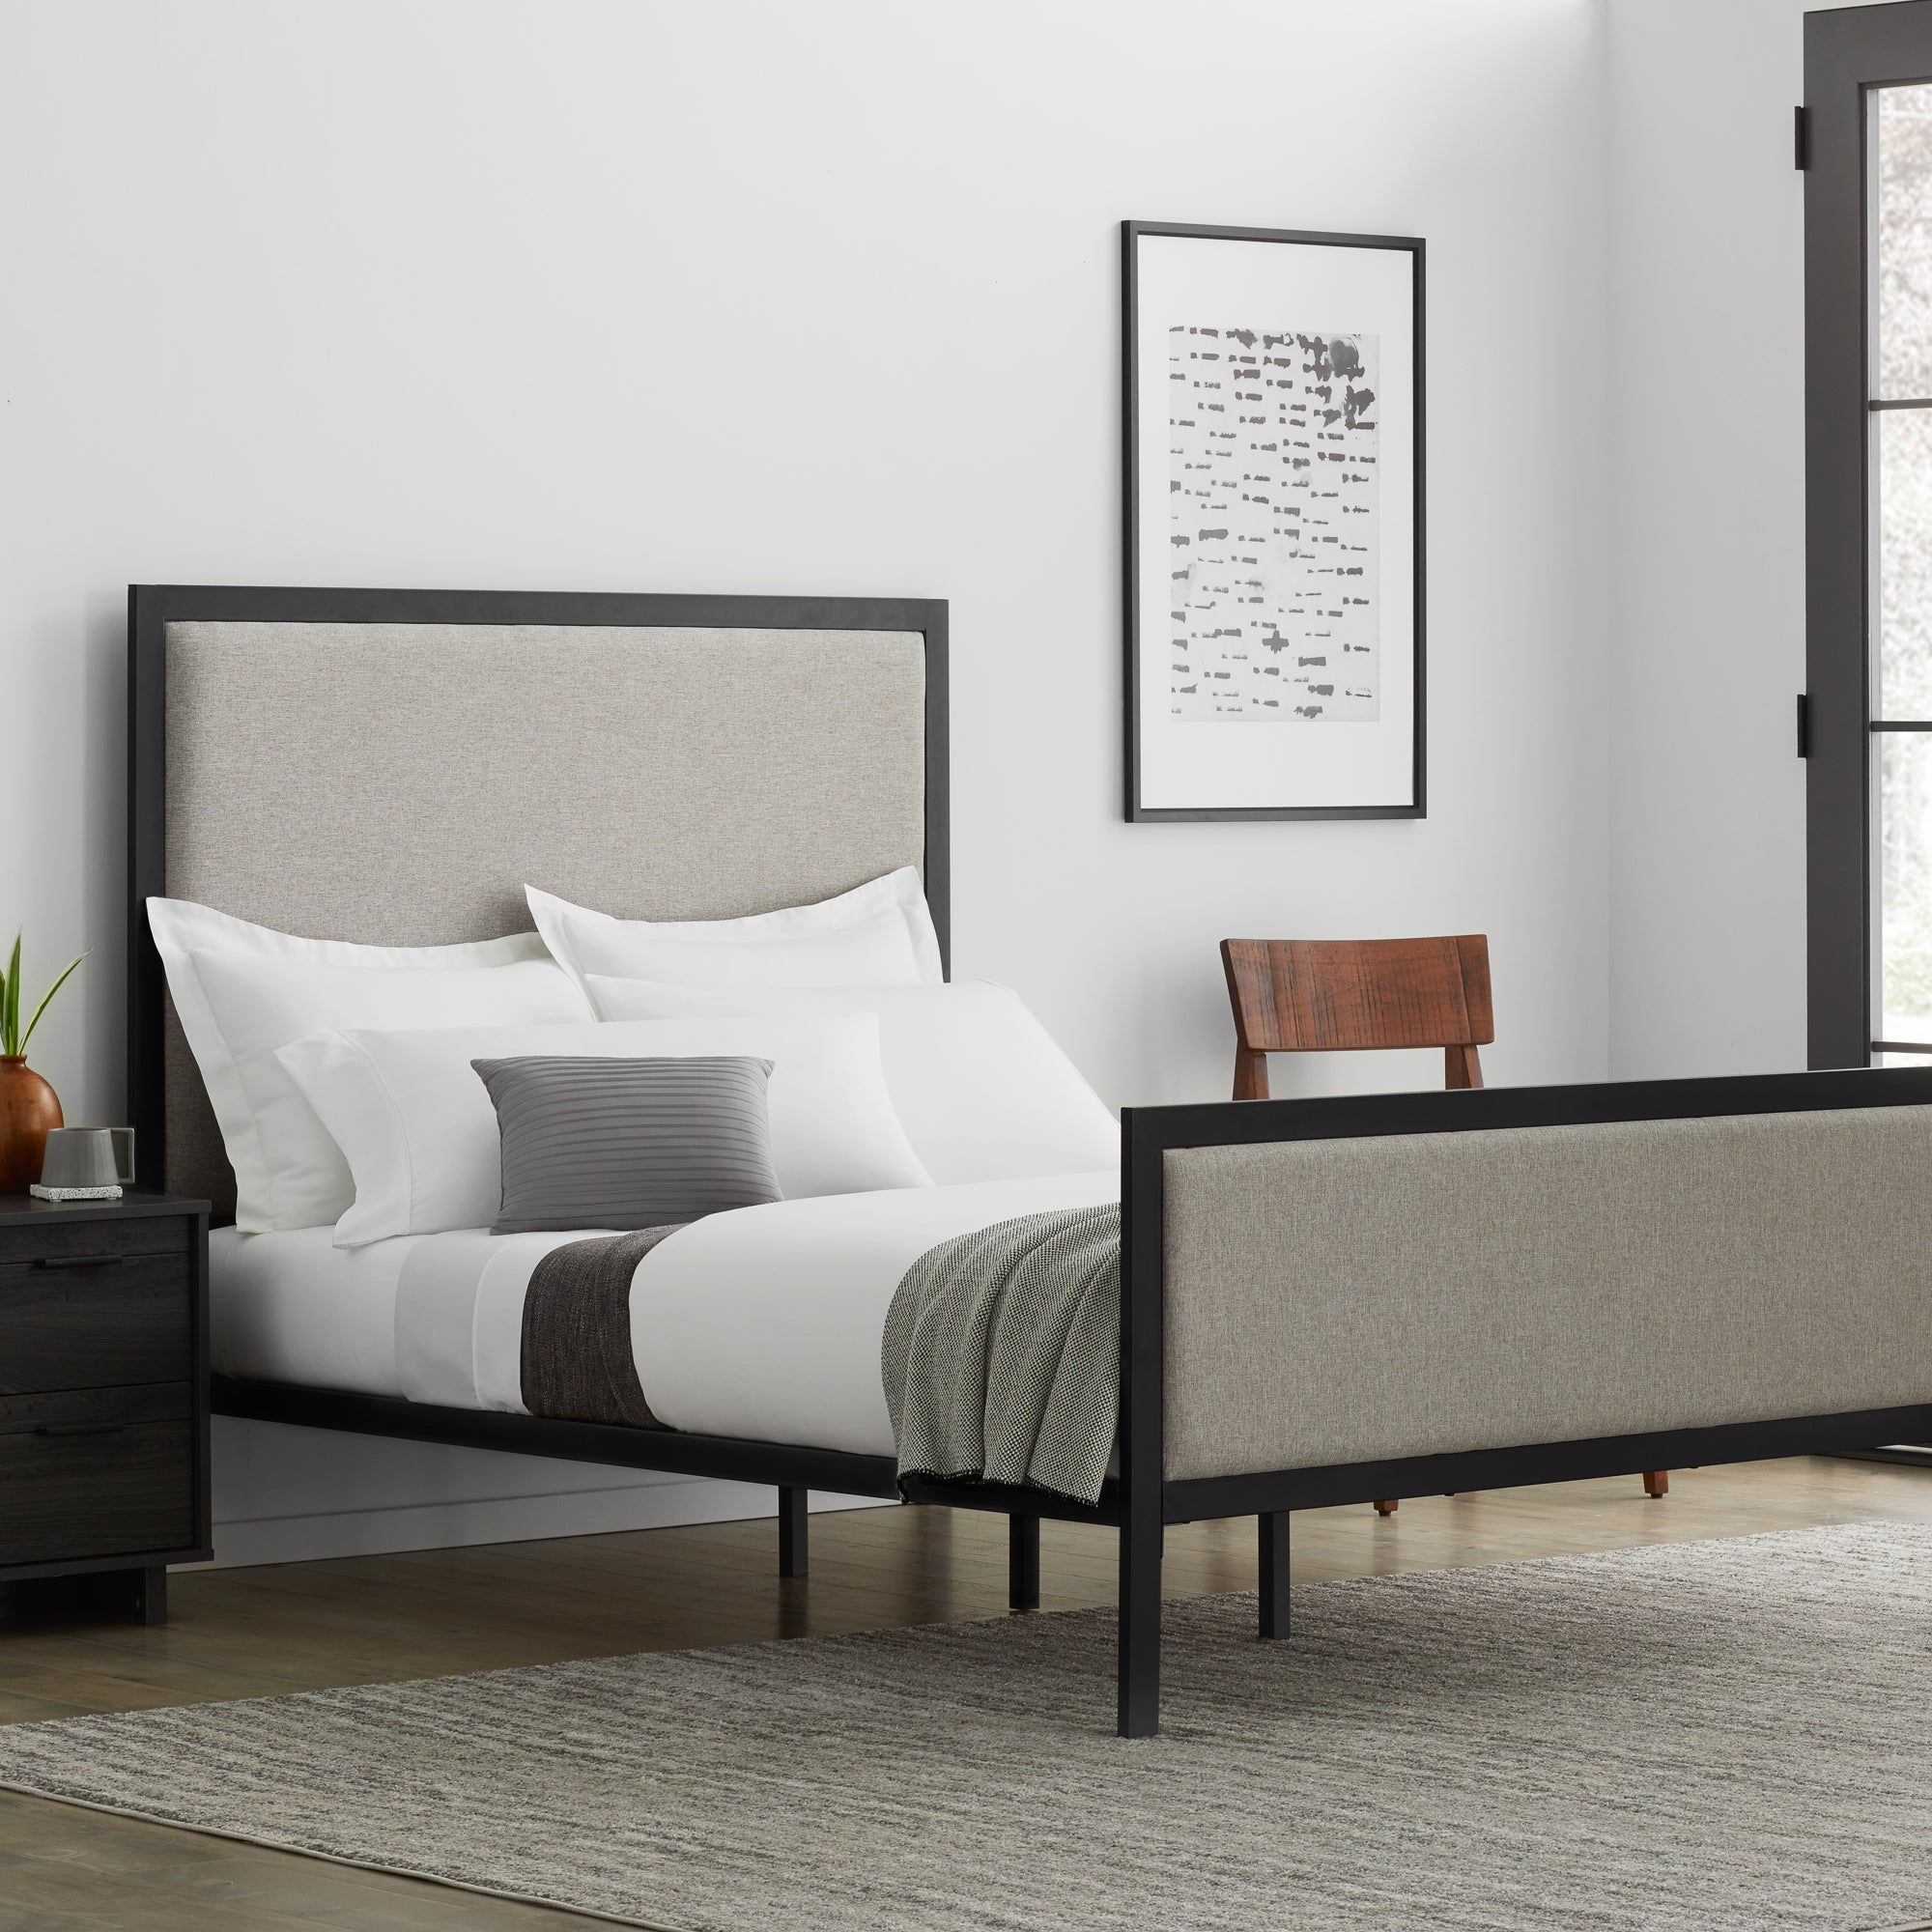 Designer Clarke Bed King Oat - Yogasleep by Malouf